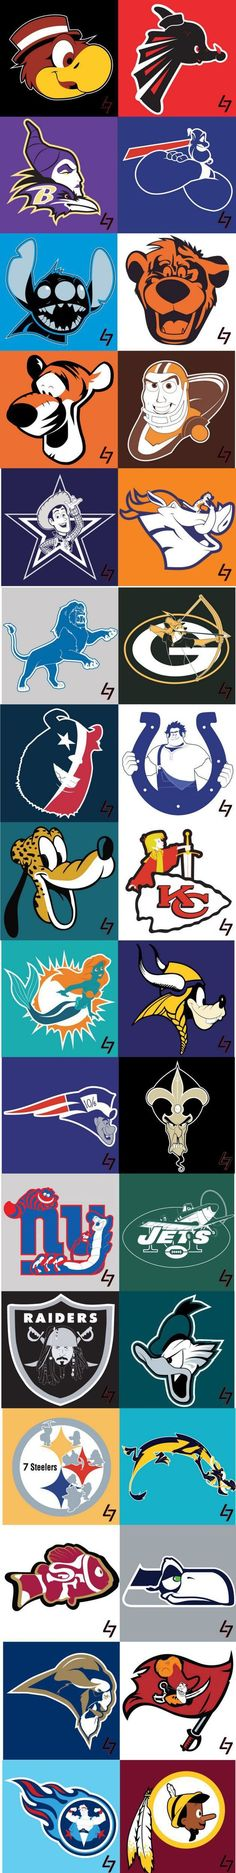 NFL logos with Disney characters: